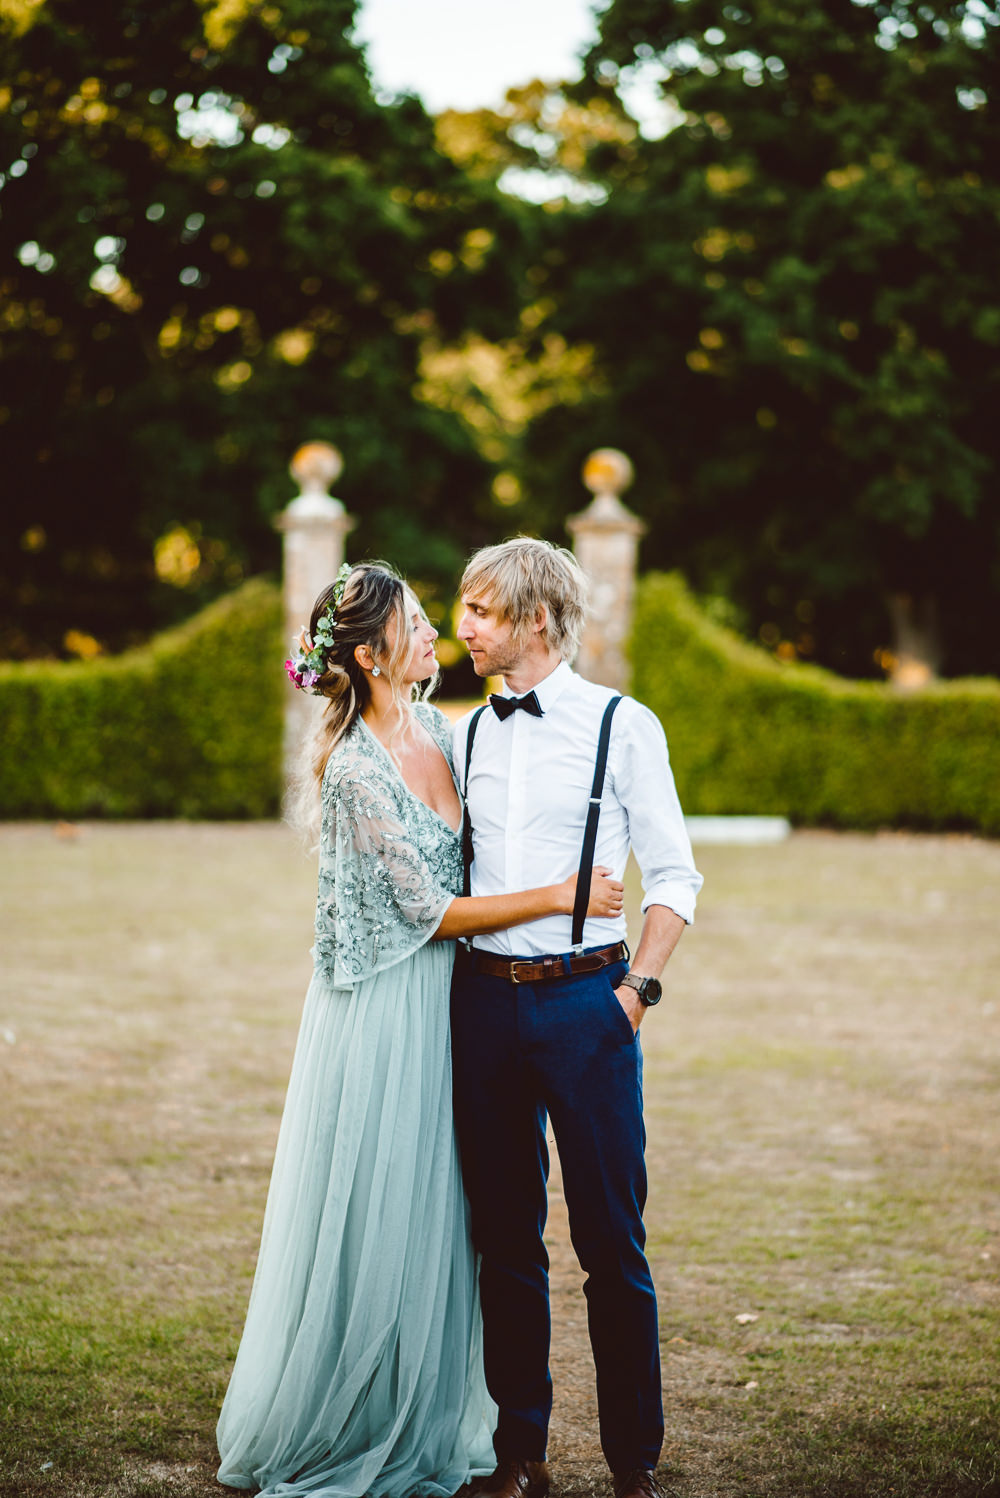 Bow Tie Braces Groom Style Trousers Ethereal Magical Golden Hour Wedding Ideas Dhw Photography